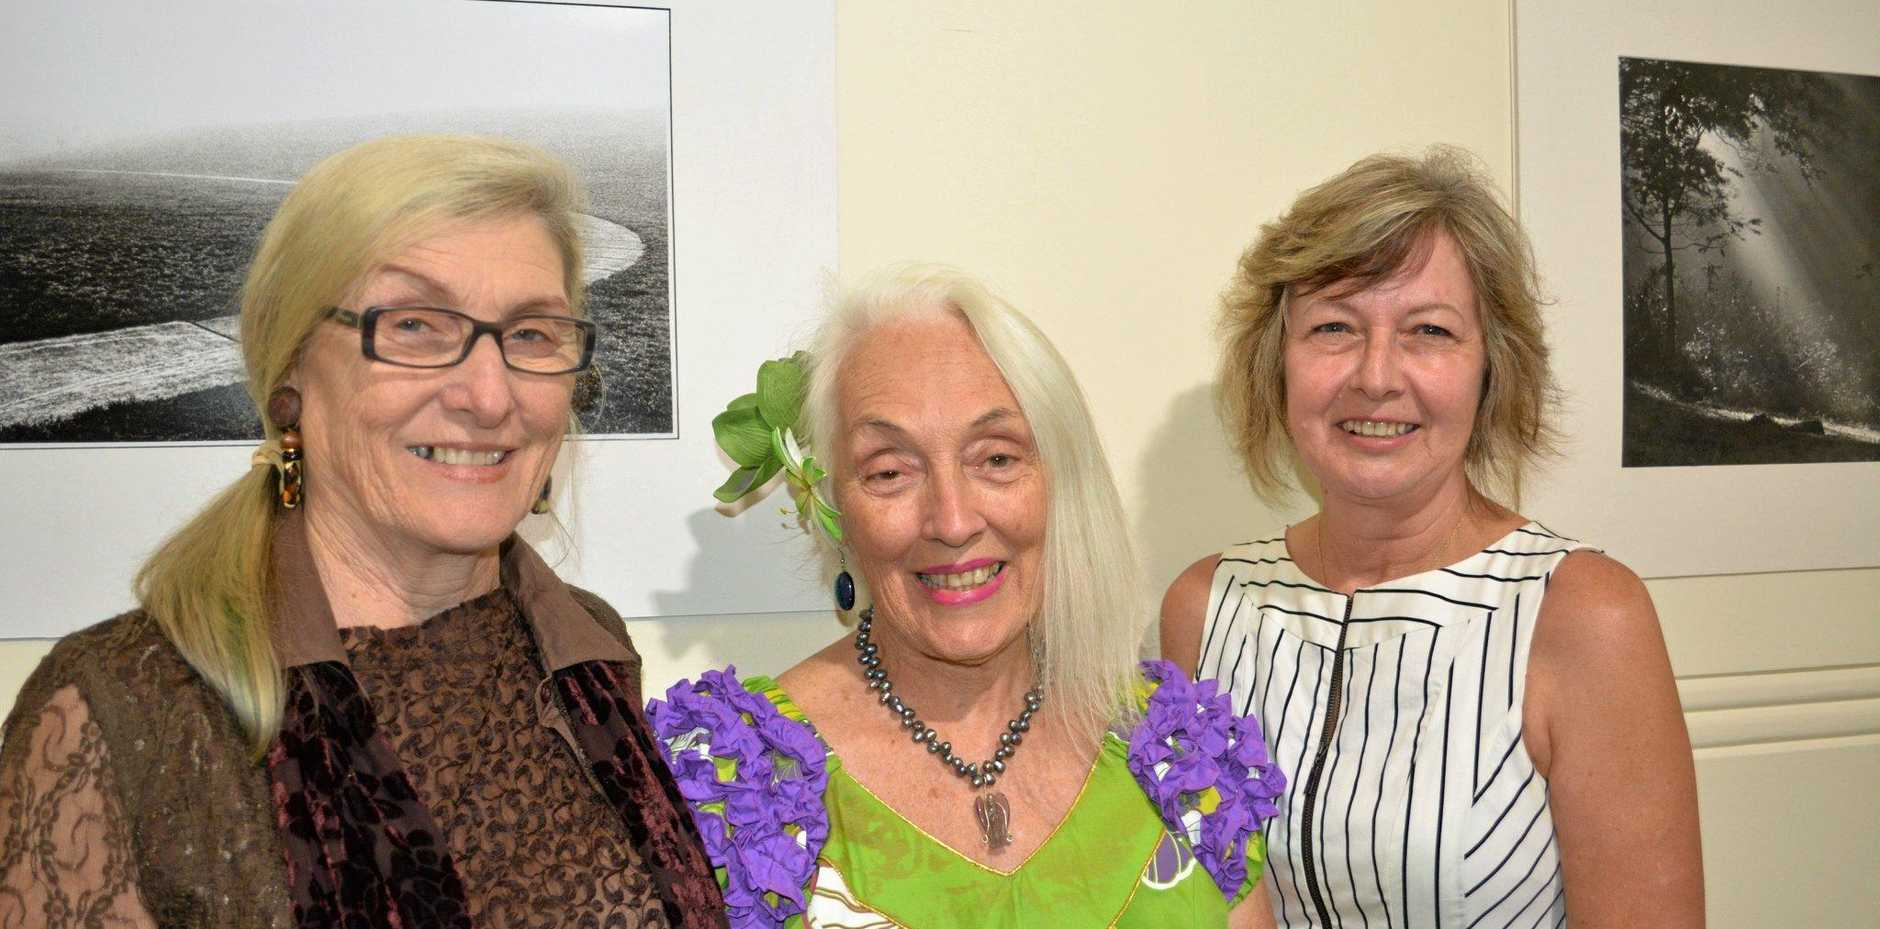 Official opening of the Seasons of Mist exhibition at St Vincent's Private Hospital. Making the most of the Season of Mists art exhibition are St Vincent's Hospital Archivist Delene Cuddihy, Jennifer Wright (Summers) and St Vincent's Hospital Volunteer Arts Program Co-ordinator Maryika Welter.